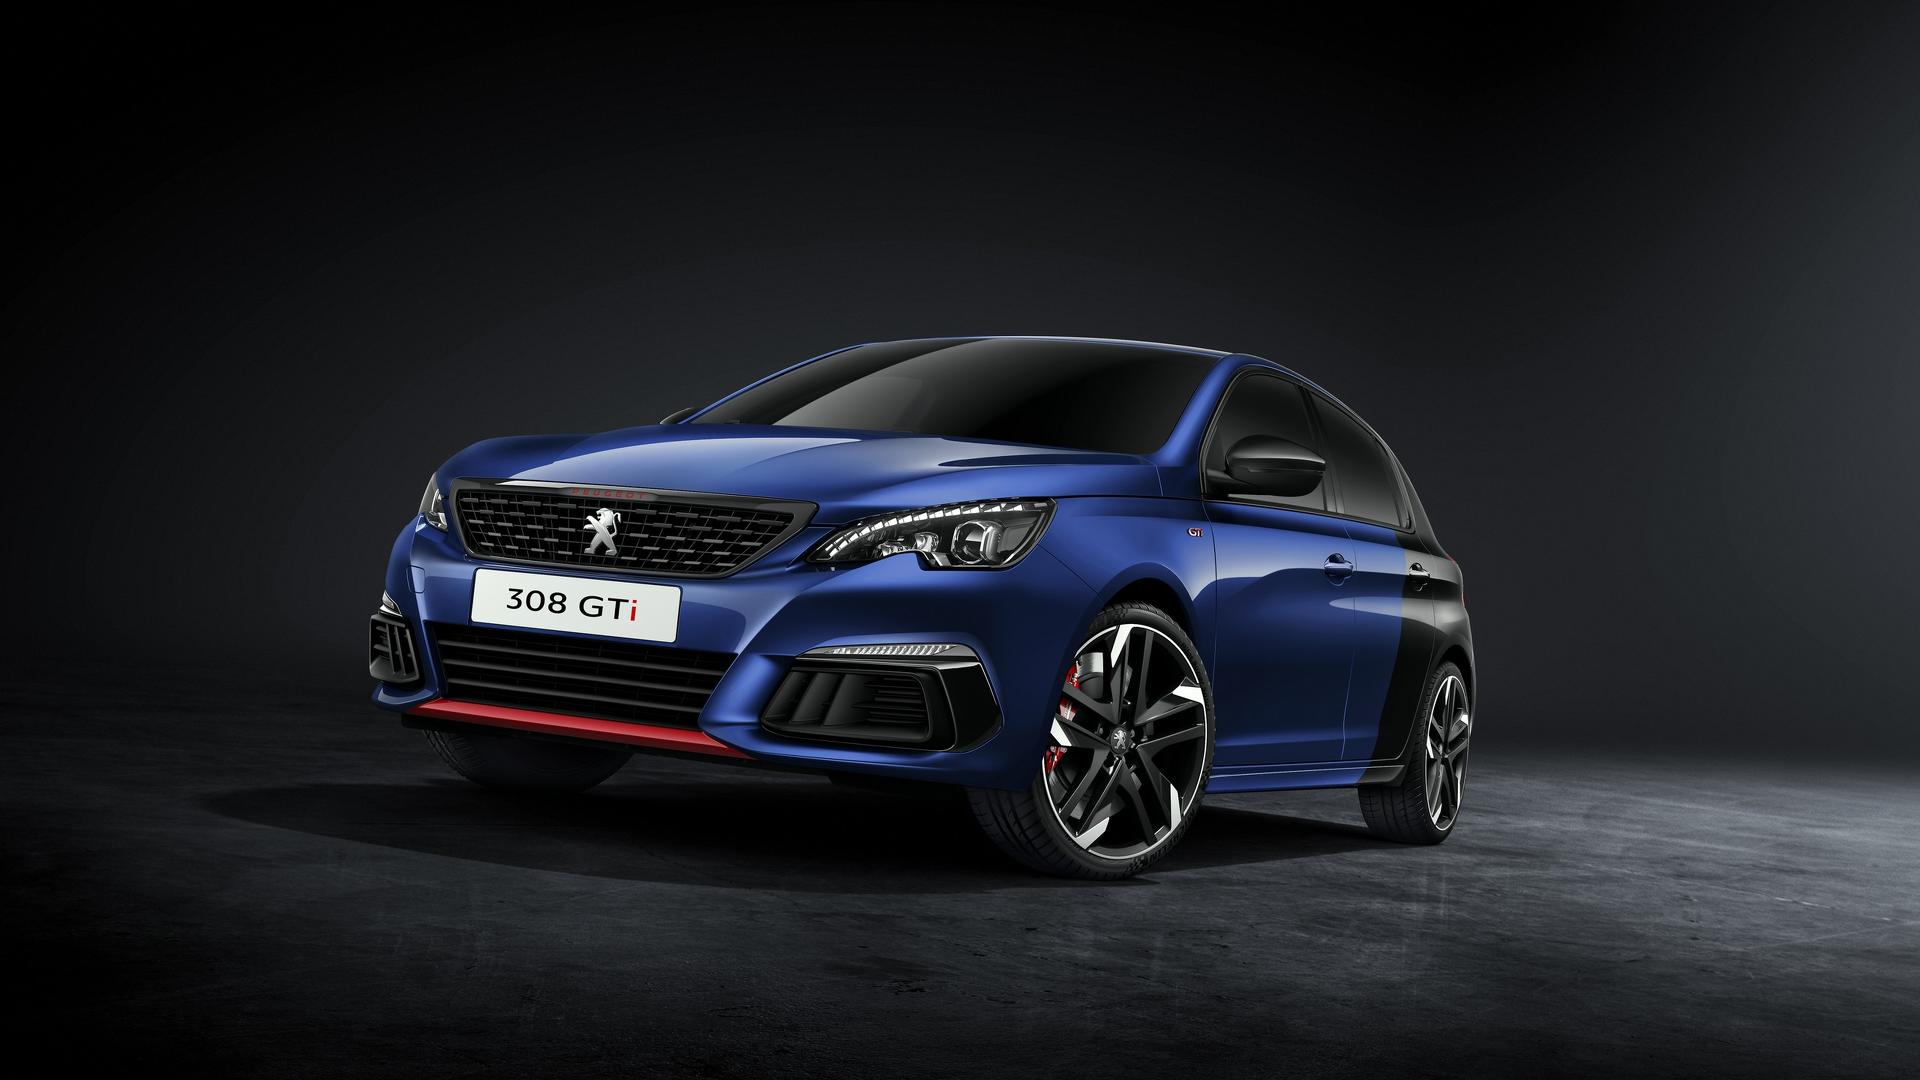 2018 Peugeot 308 Facelift Detailed in Extensive Gallery, Videos